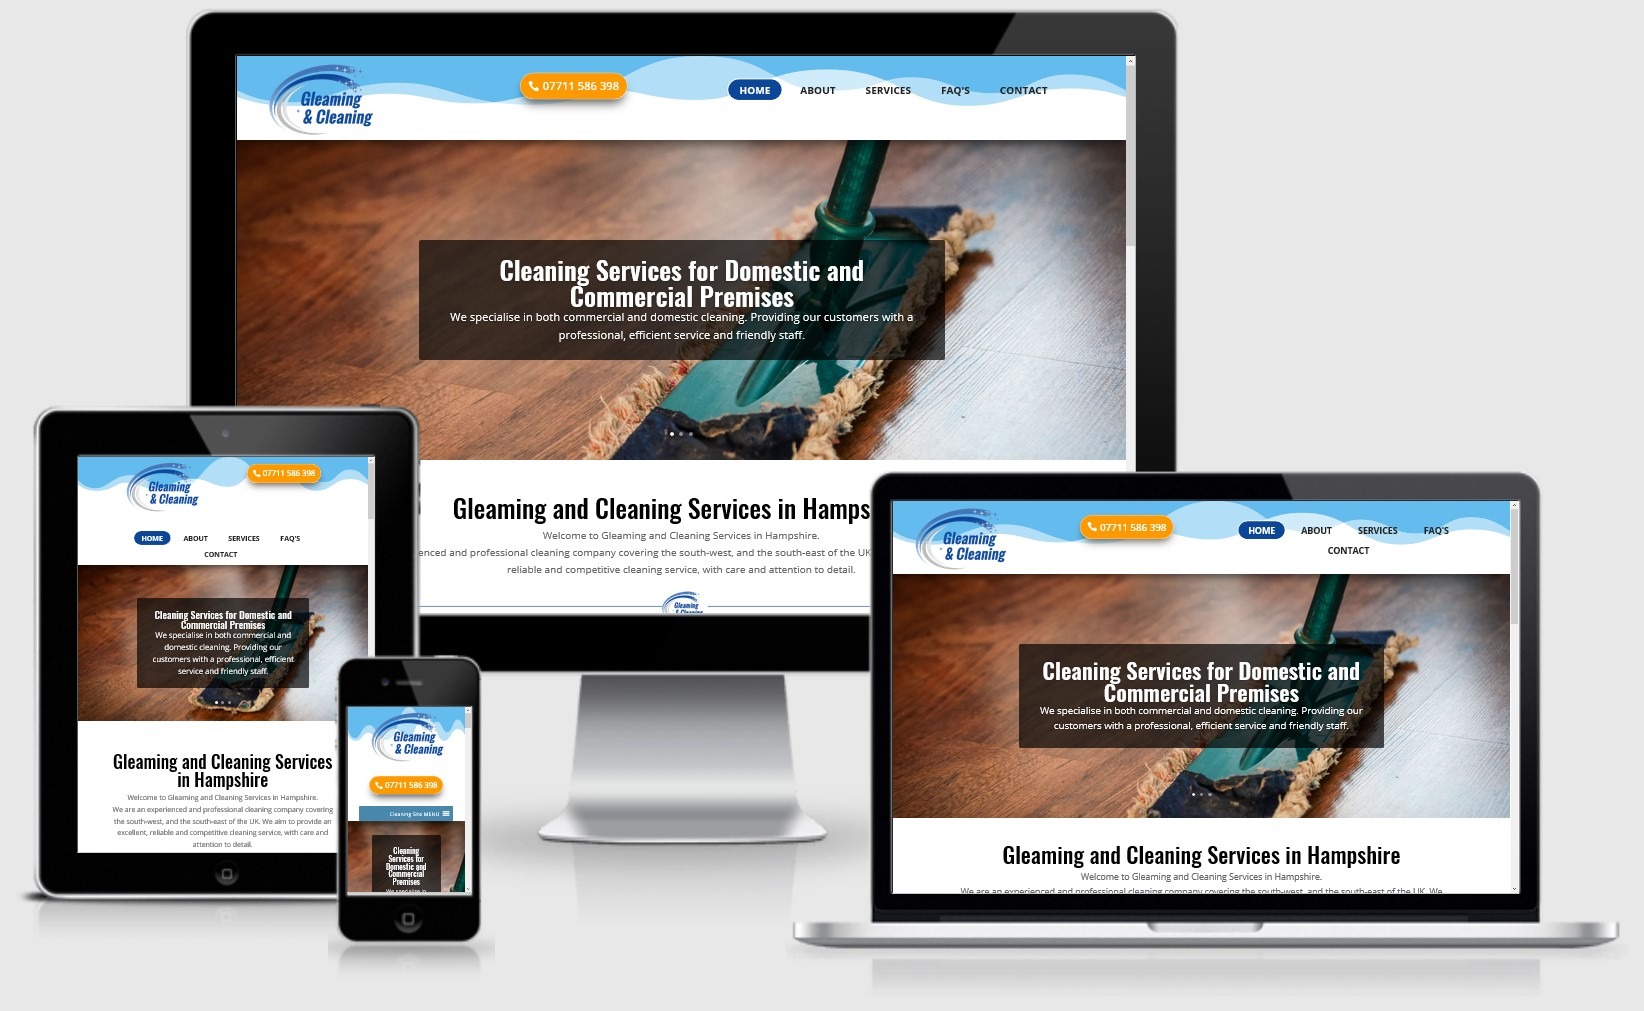 Gleaming & Cleaning Website